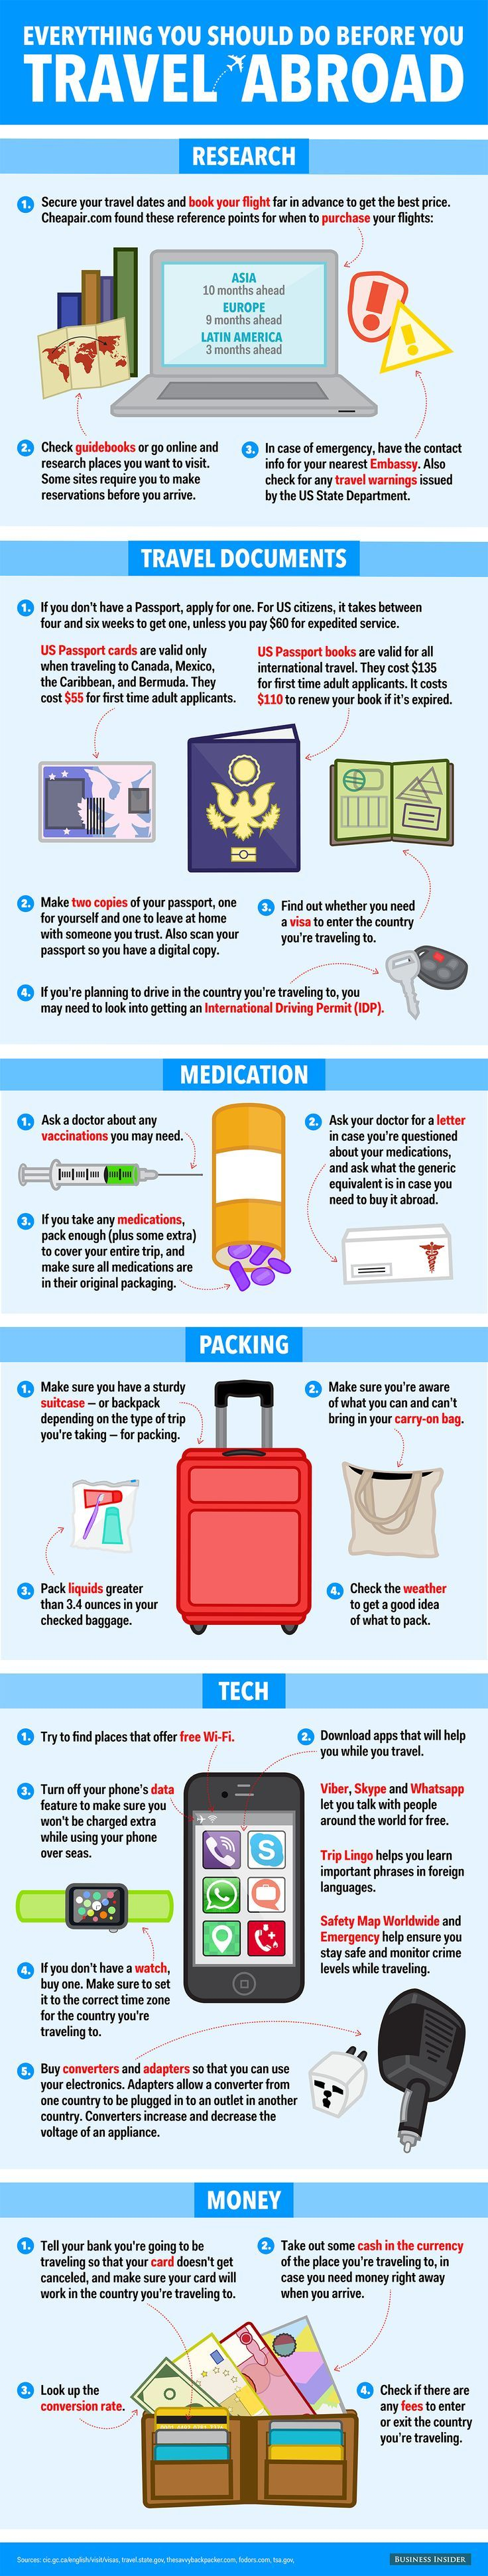 Heres everything you should do before you travel abroad